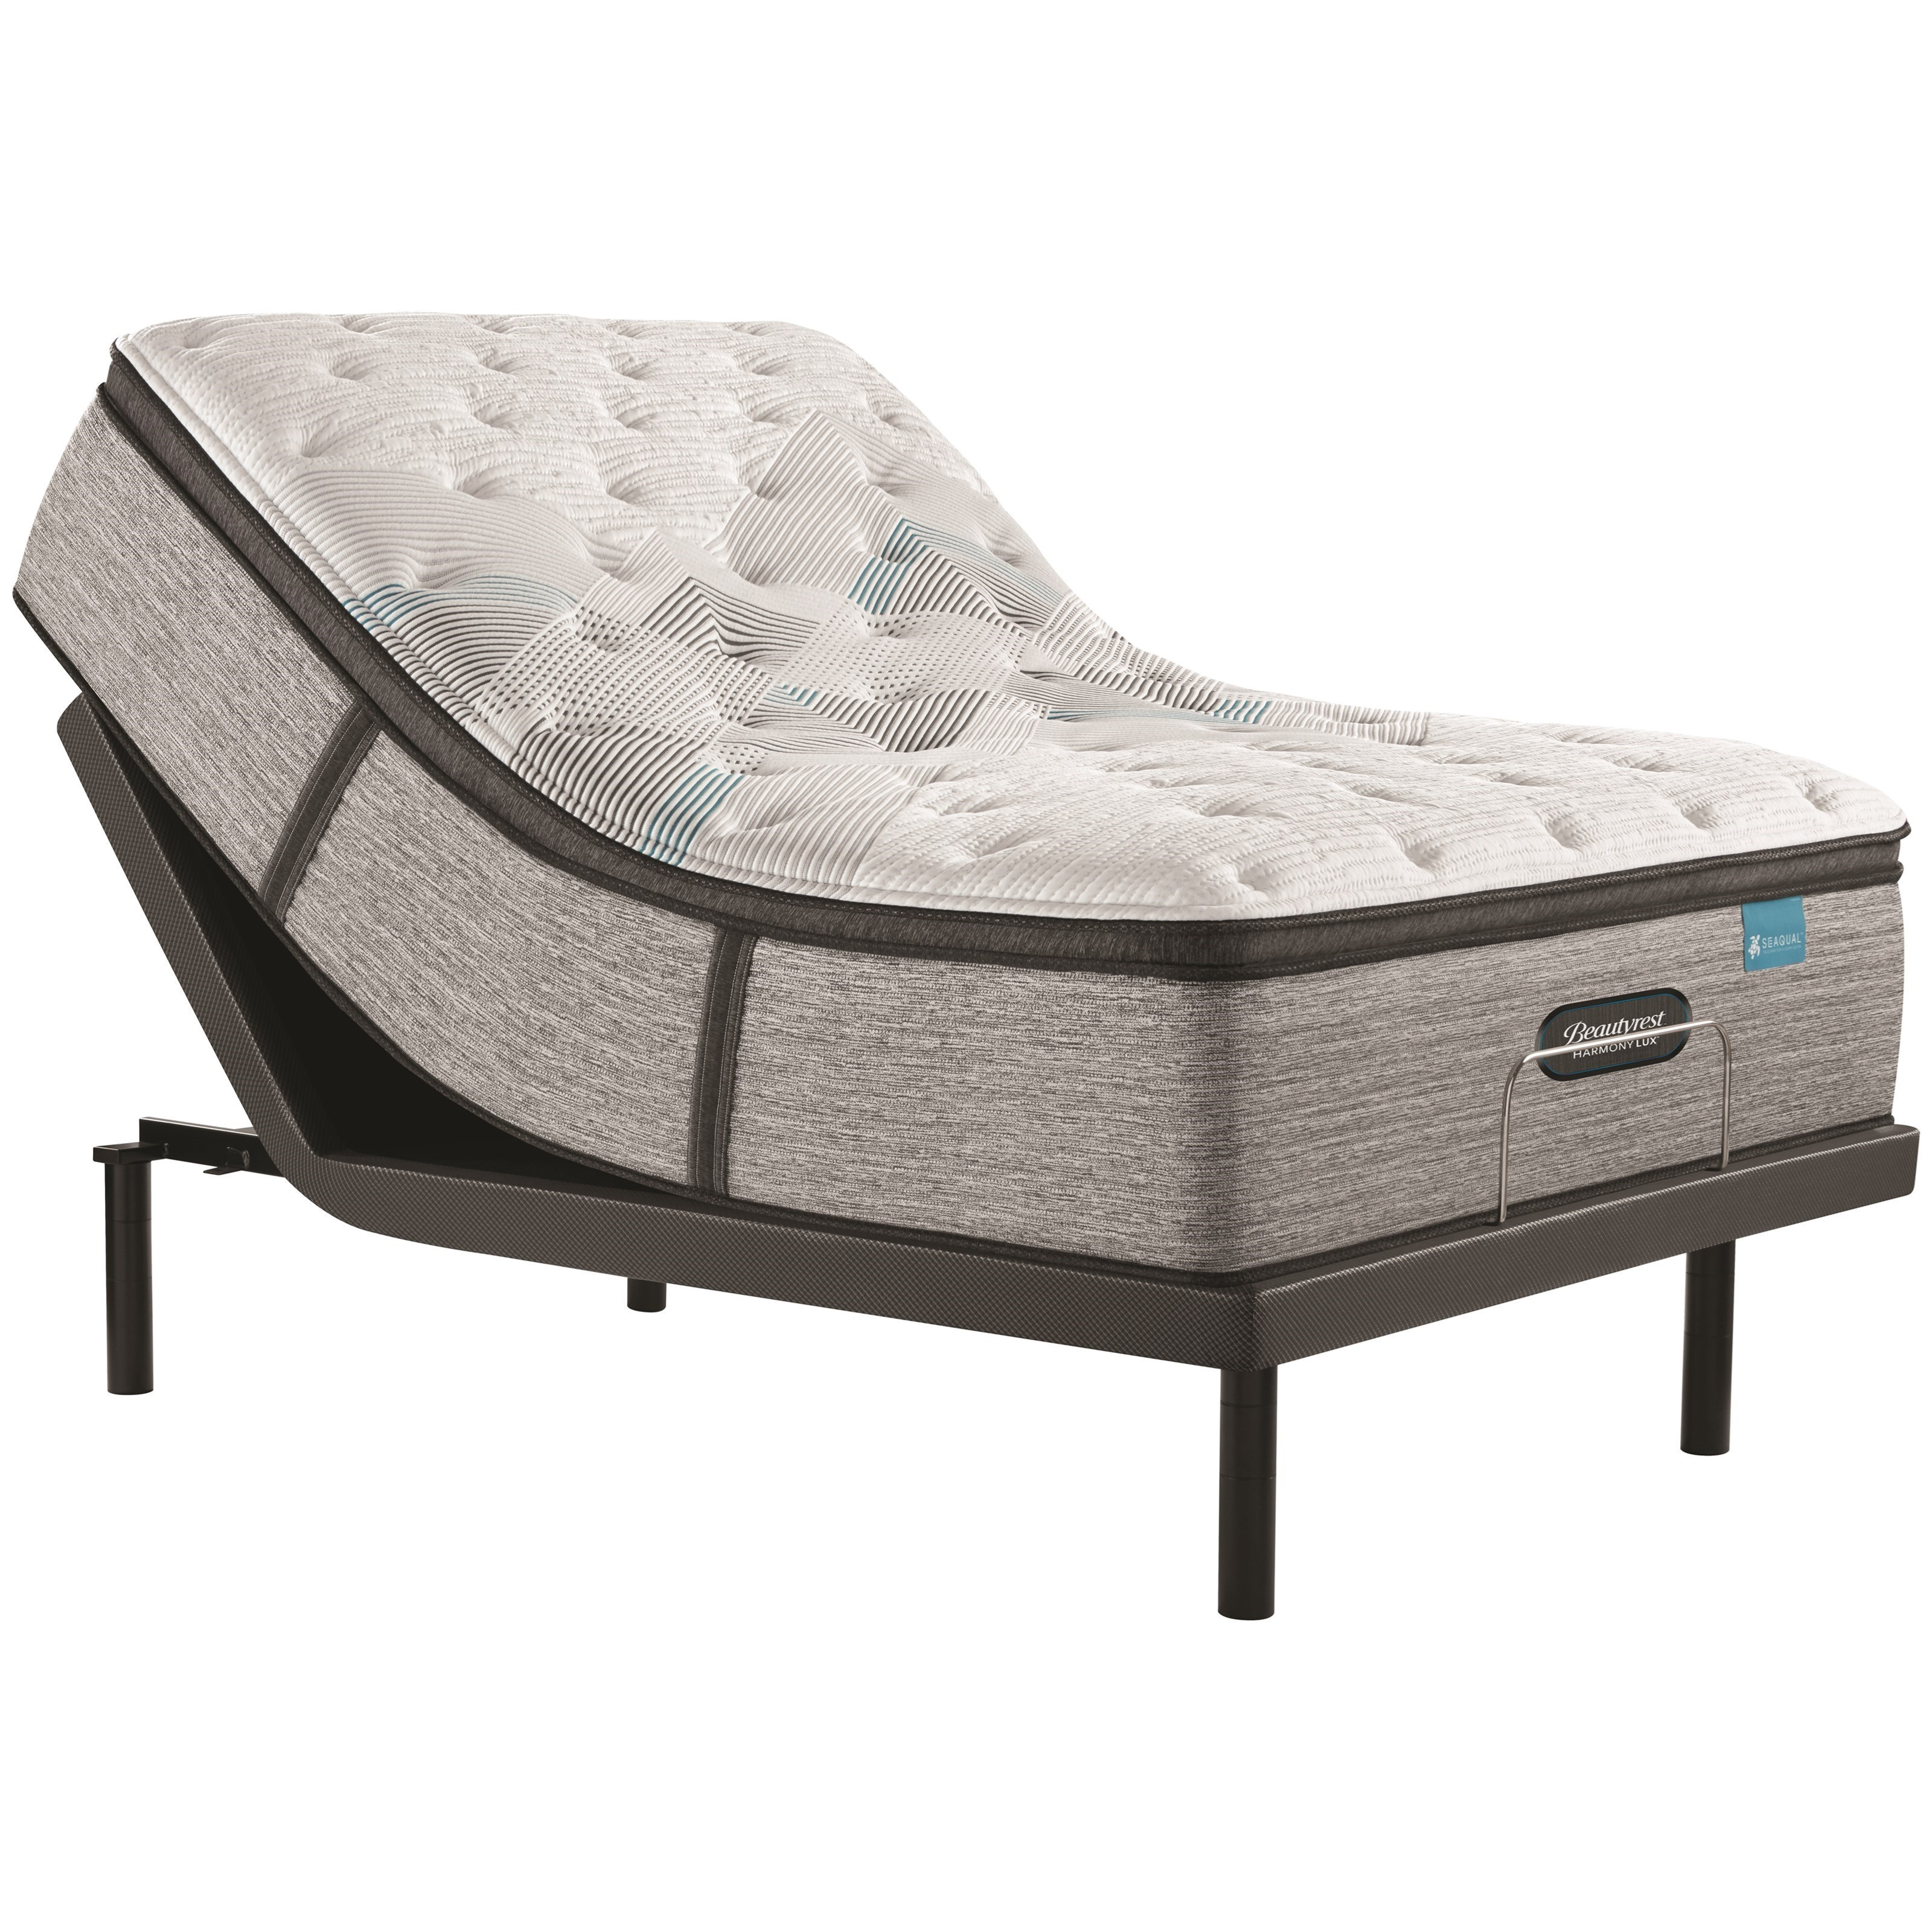 """King 15 3/4"""" Plush Pillow Top Pocketed Coil Mattress and Advanced Motion Adjustable Base"""